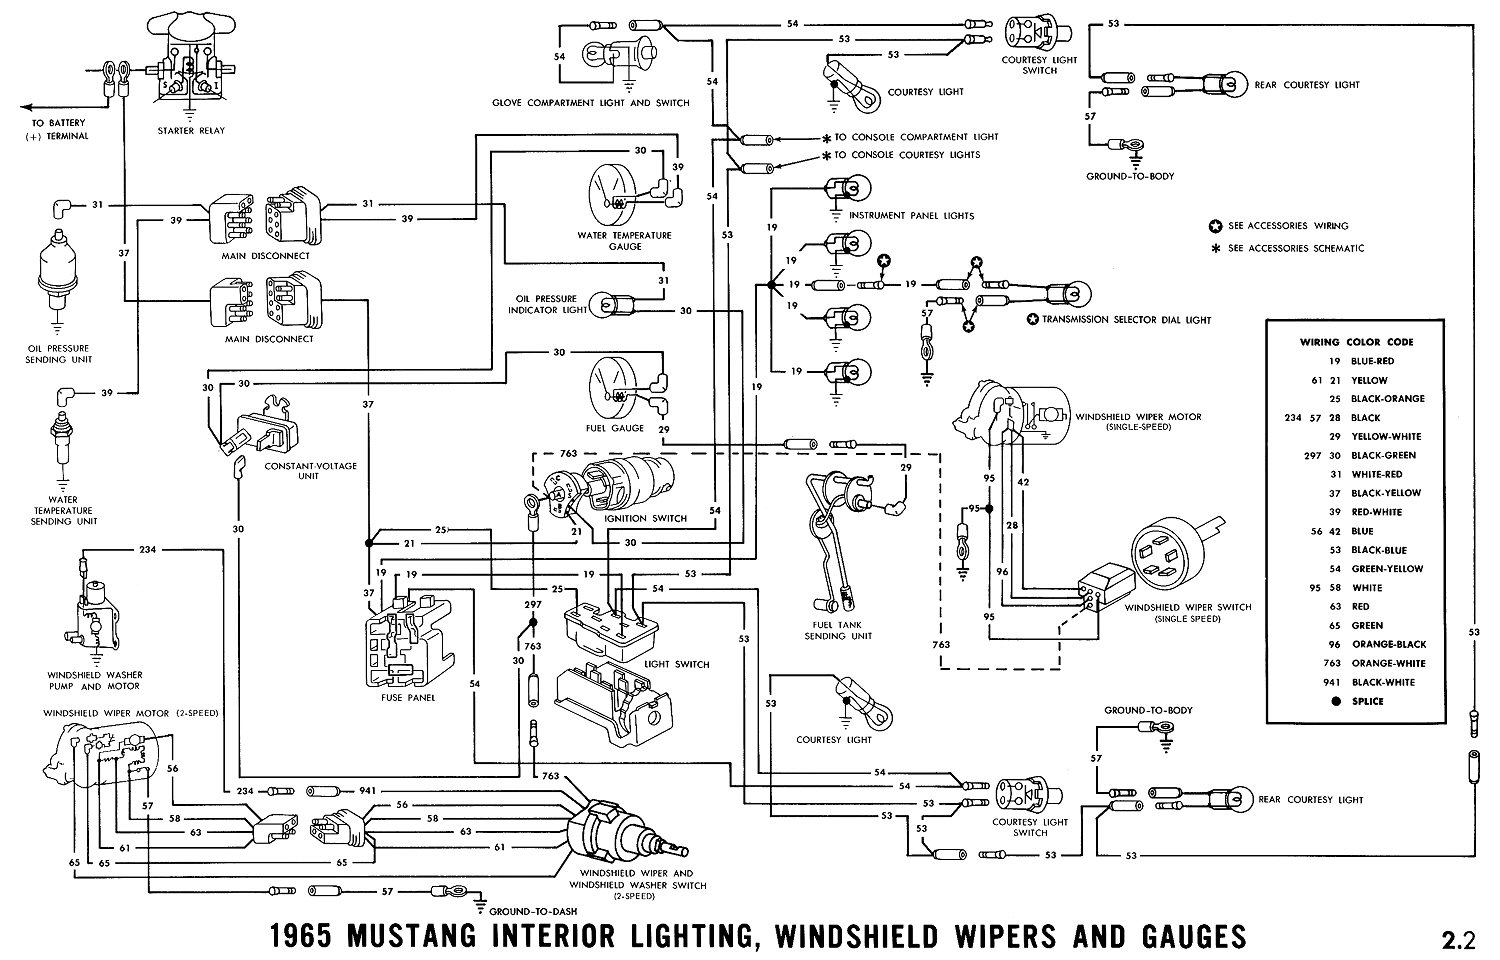 hight resolution of 1965 ford f100 wiring diagram further 66 mustang fuse box diagram 1997 ford mustang wiring diagram 1966 mustang turn signal wiring diagram